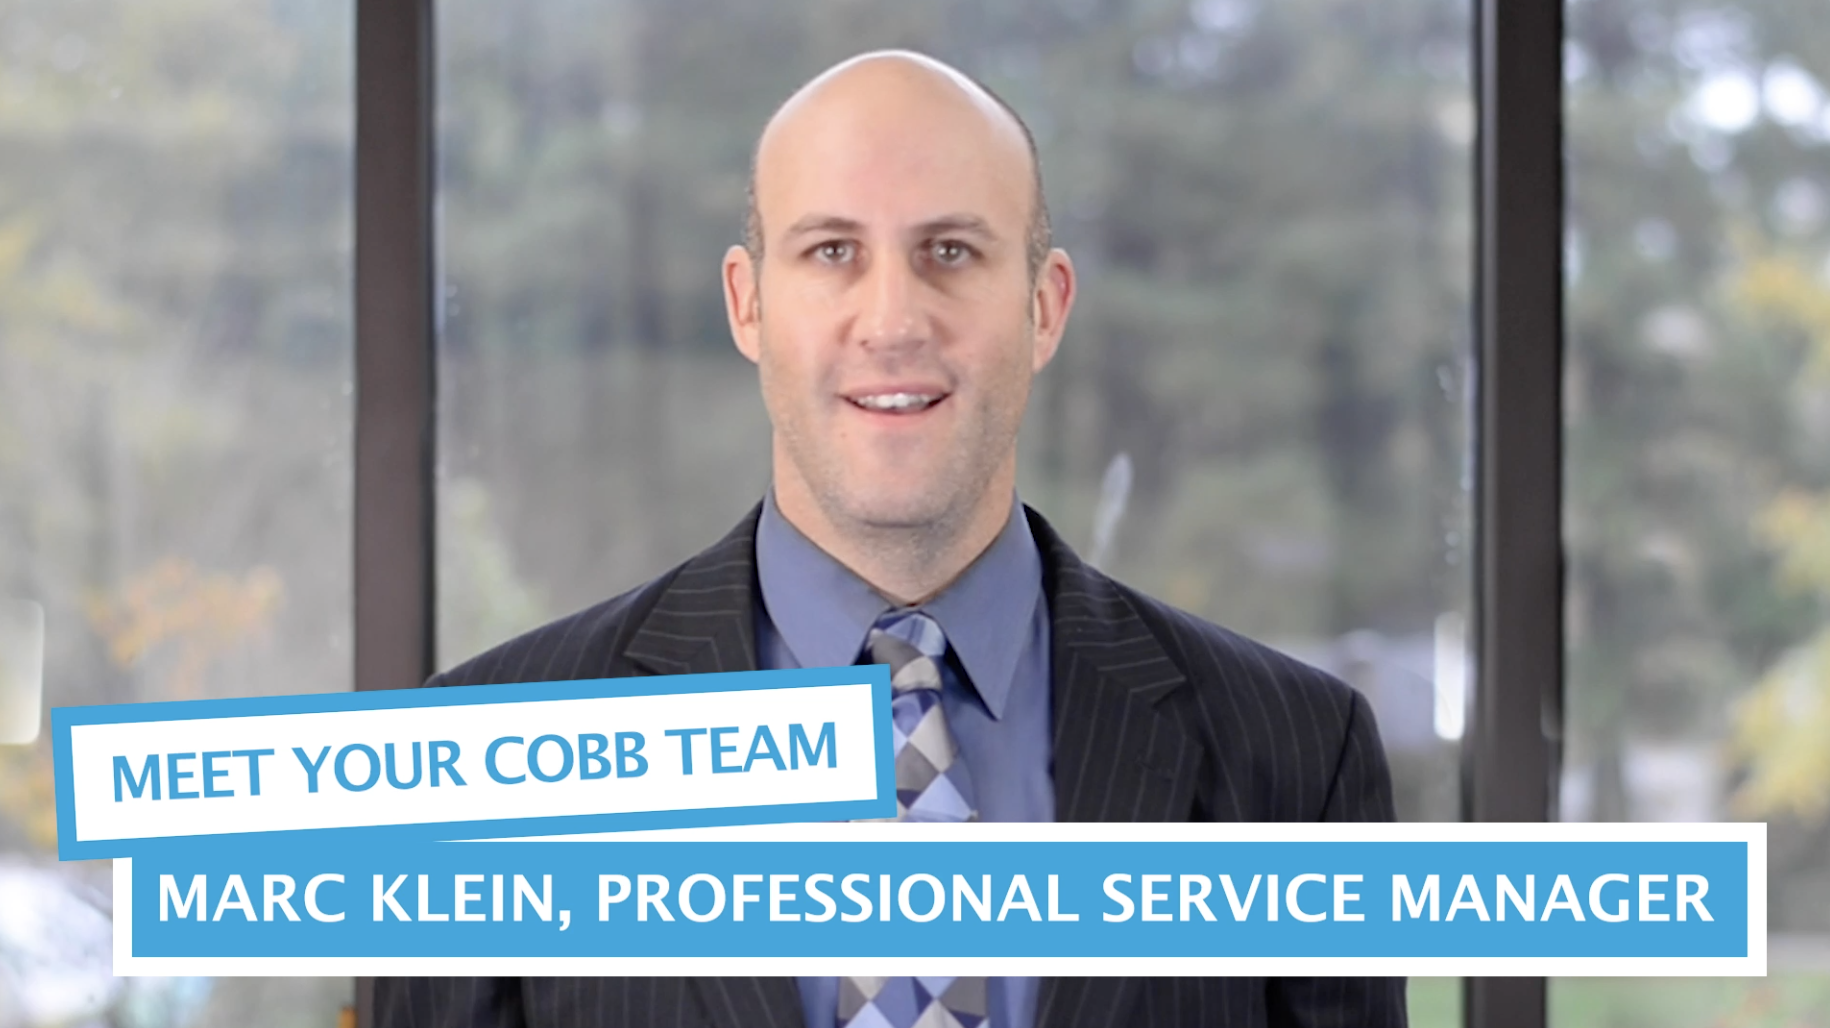 Meet Your Cobb Team: Marc Klein, Professional Services Manager